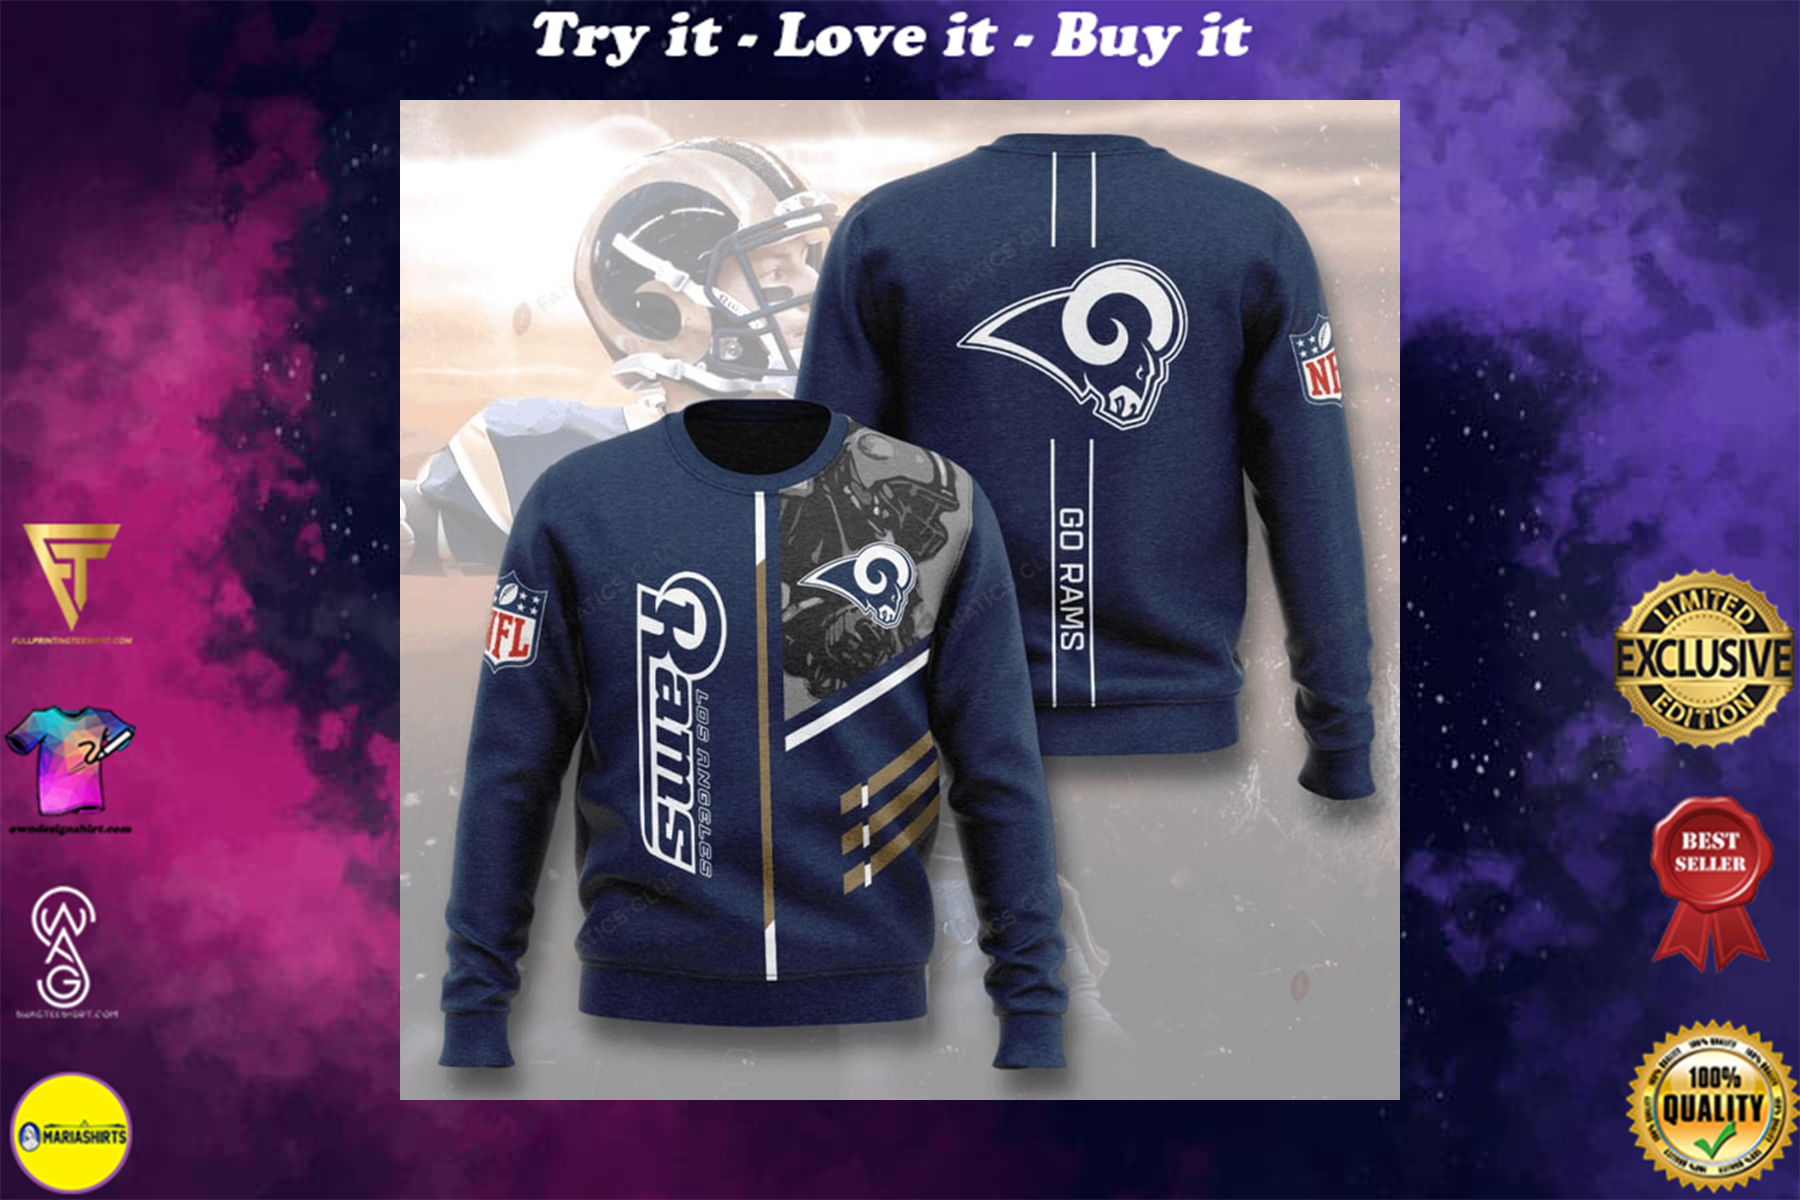 [special edition] national football league los angeles rams go rams full printing ugly sweater - maria